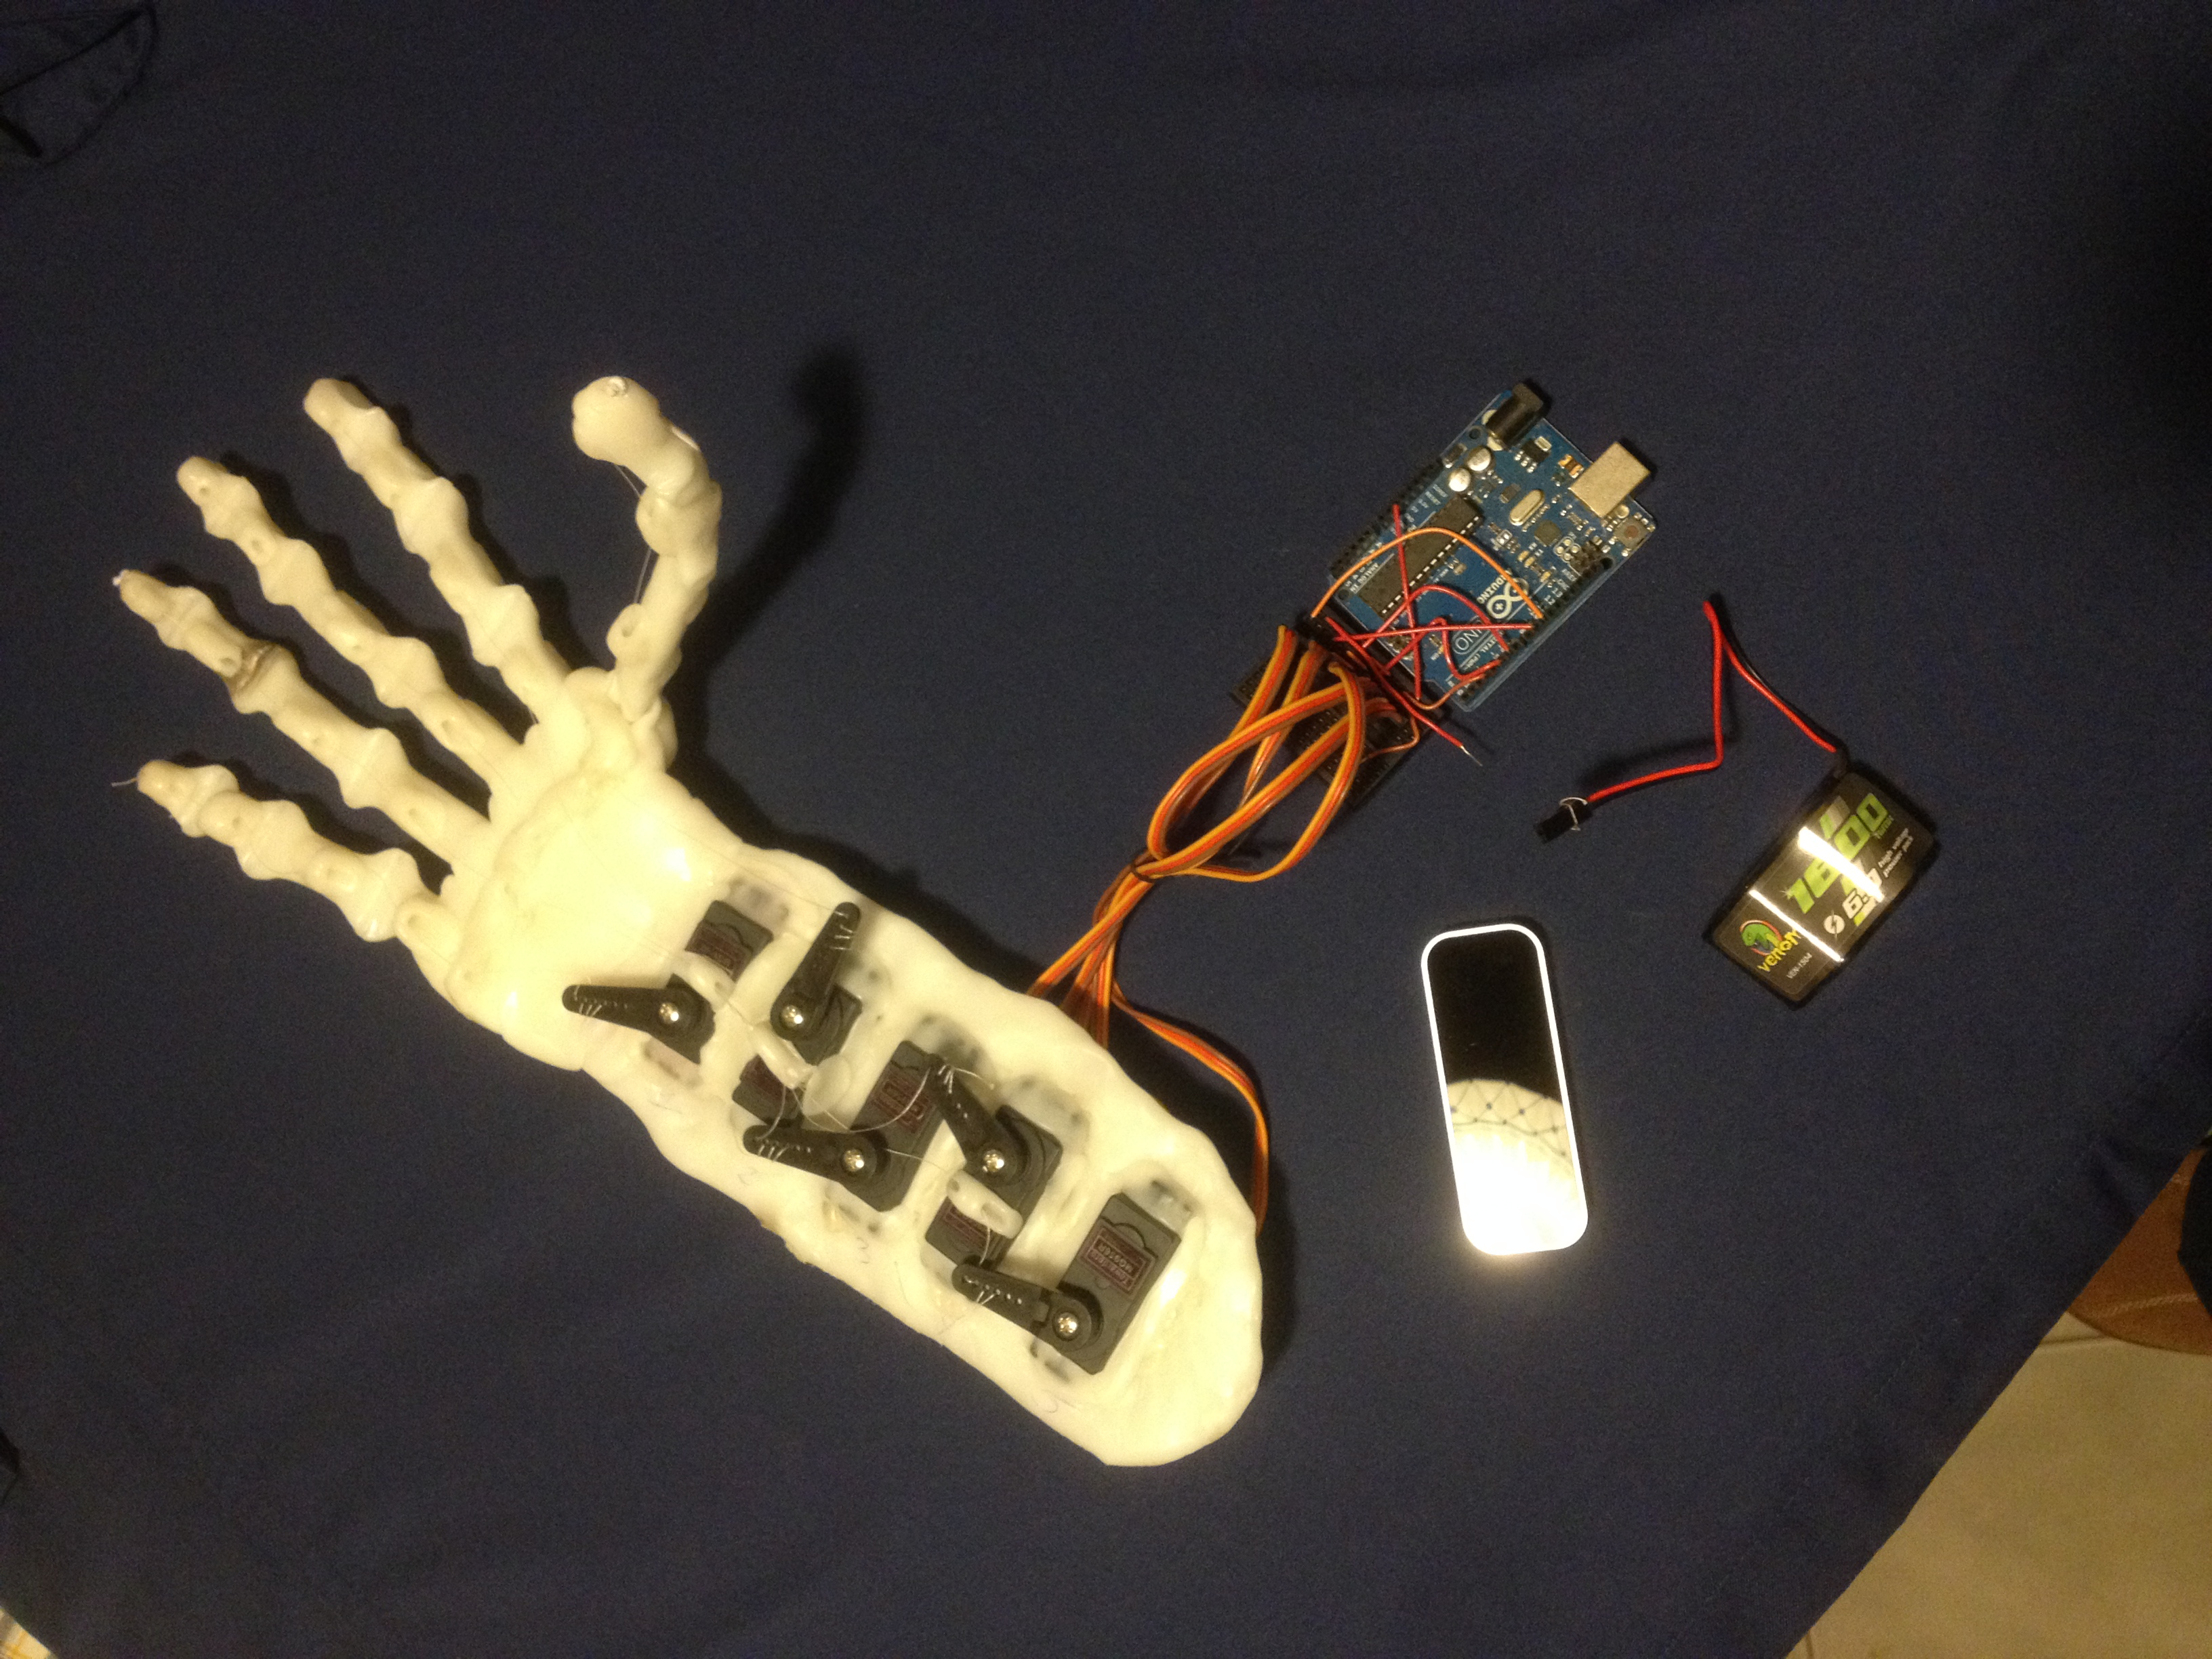 Robotic Hand controlled by Gesture with Arduino + Leap Motion